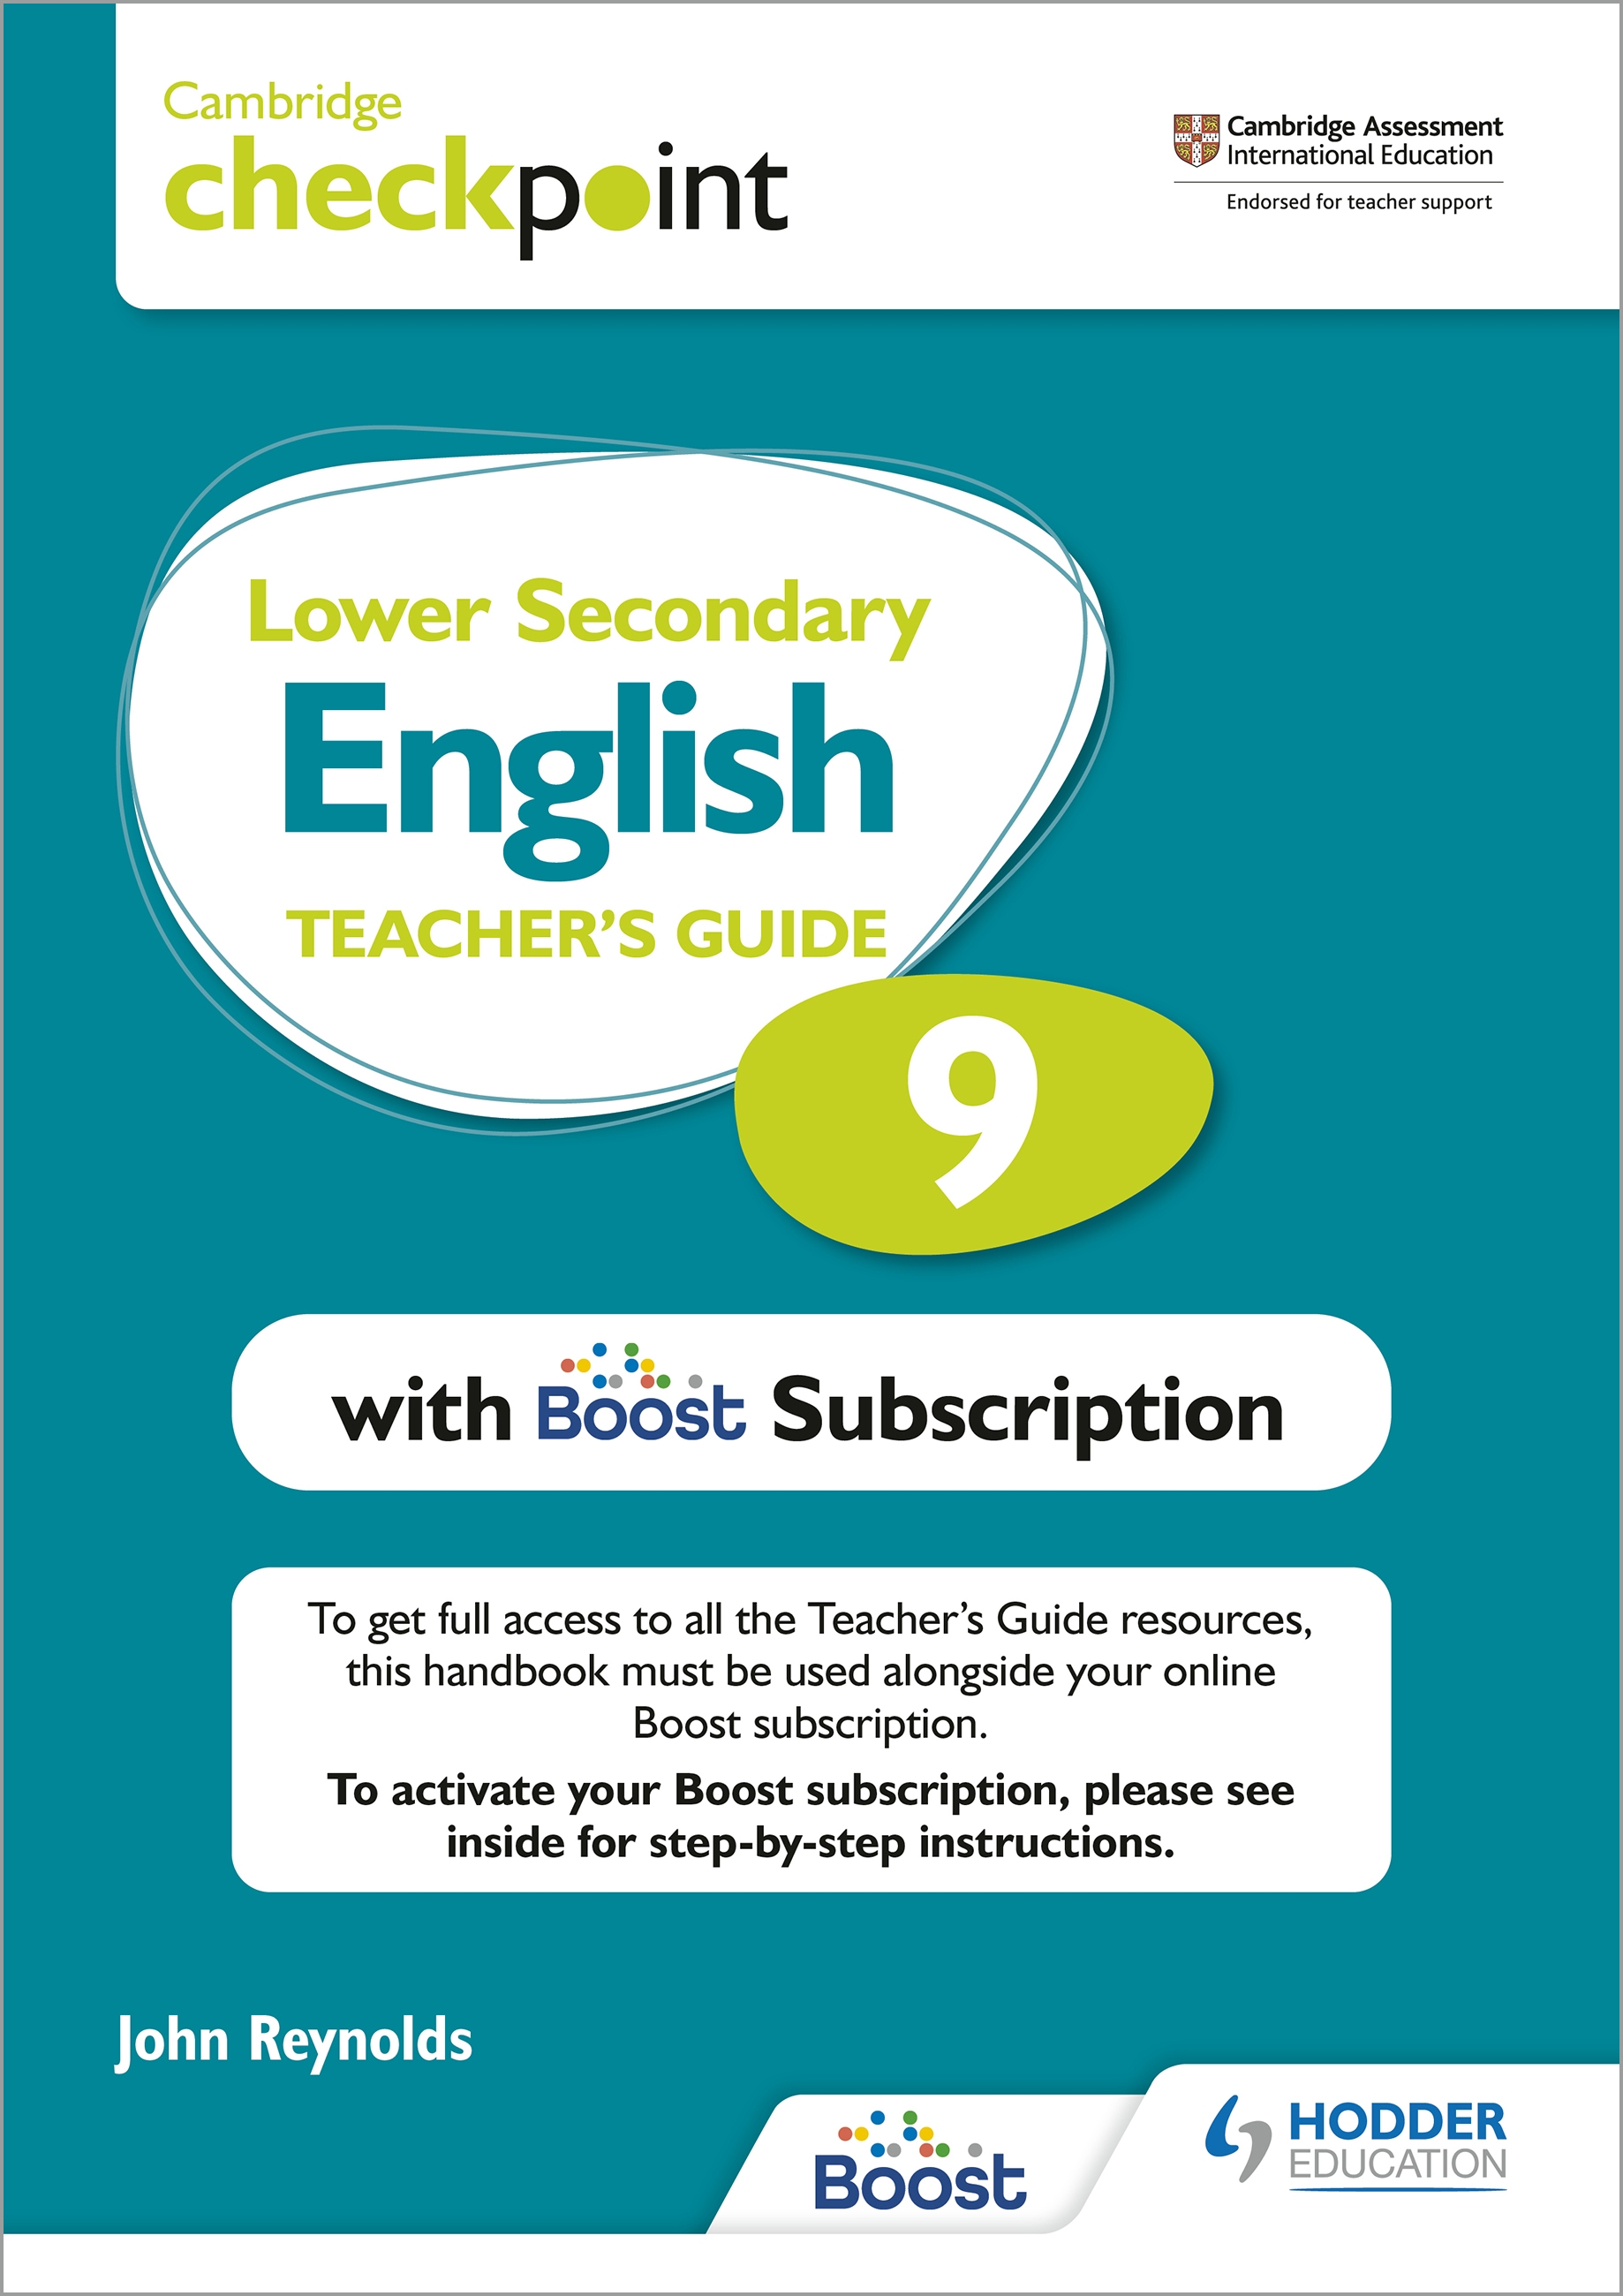 Cambridge Checkpoint Lower Secondary English Teacher's Guide 9 with Boost Subscription Booklet : Third Edition